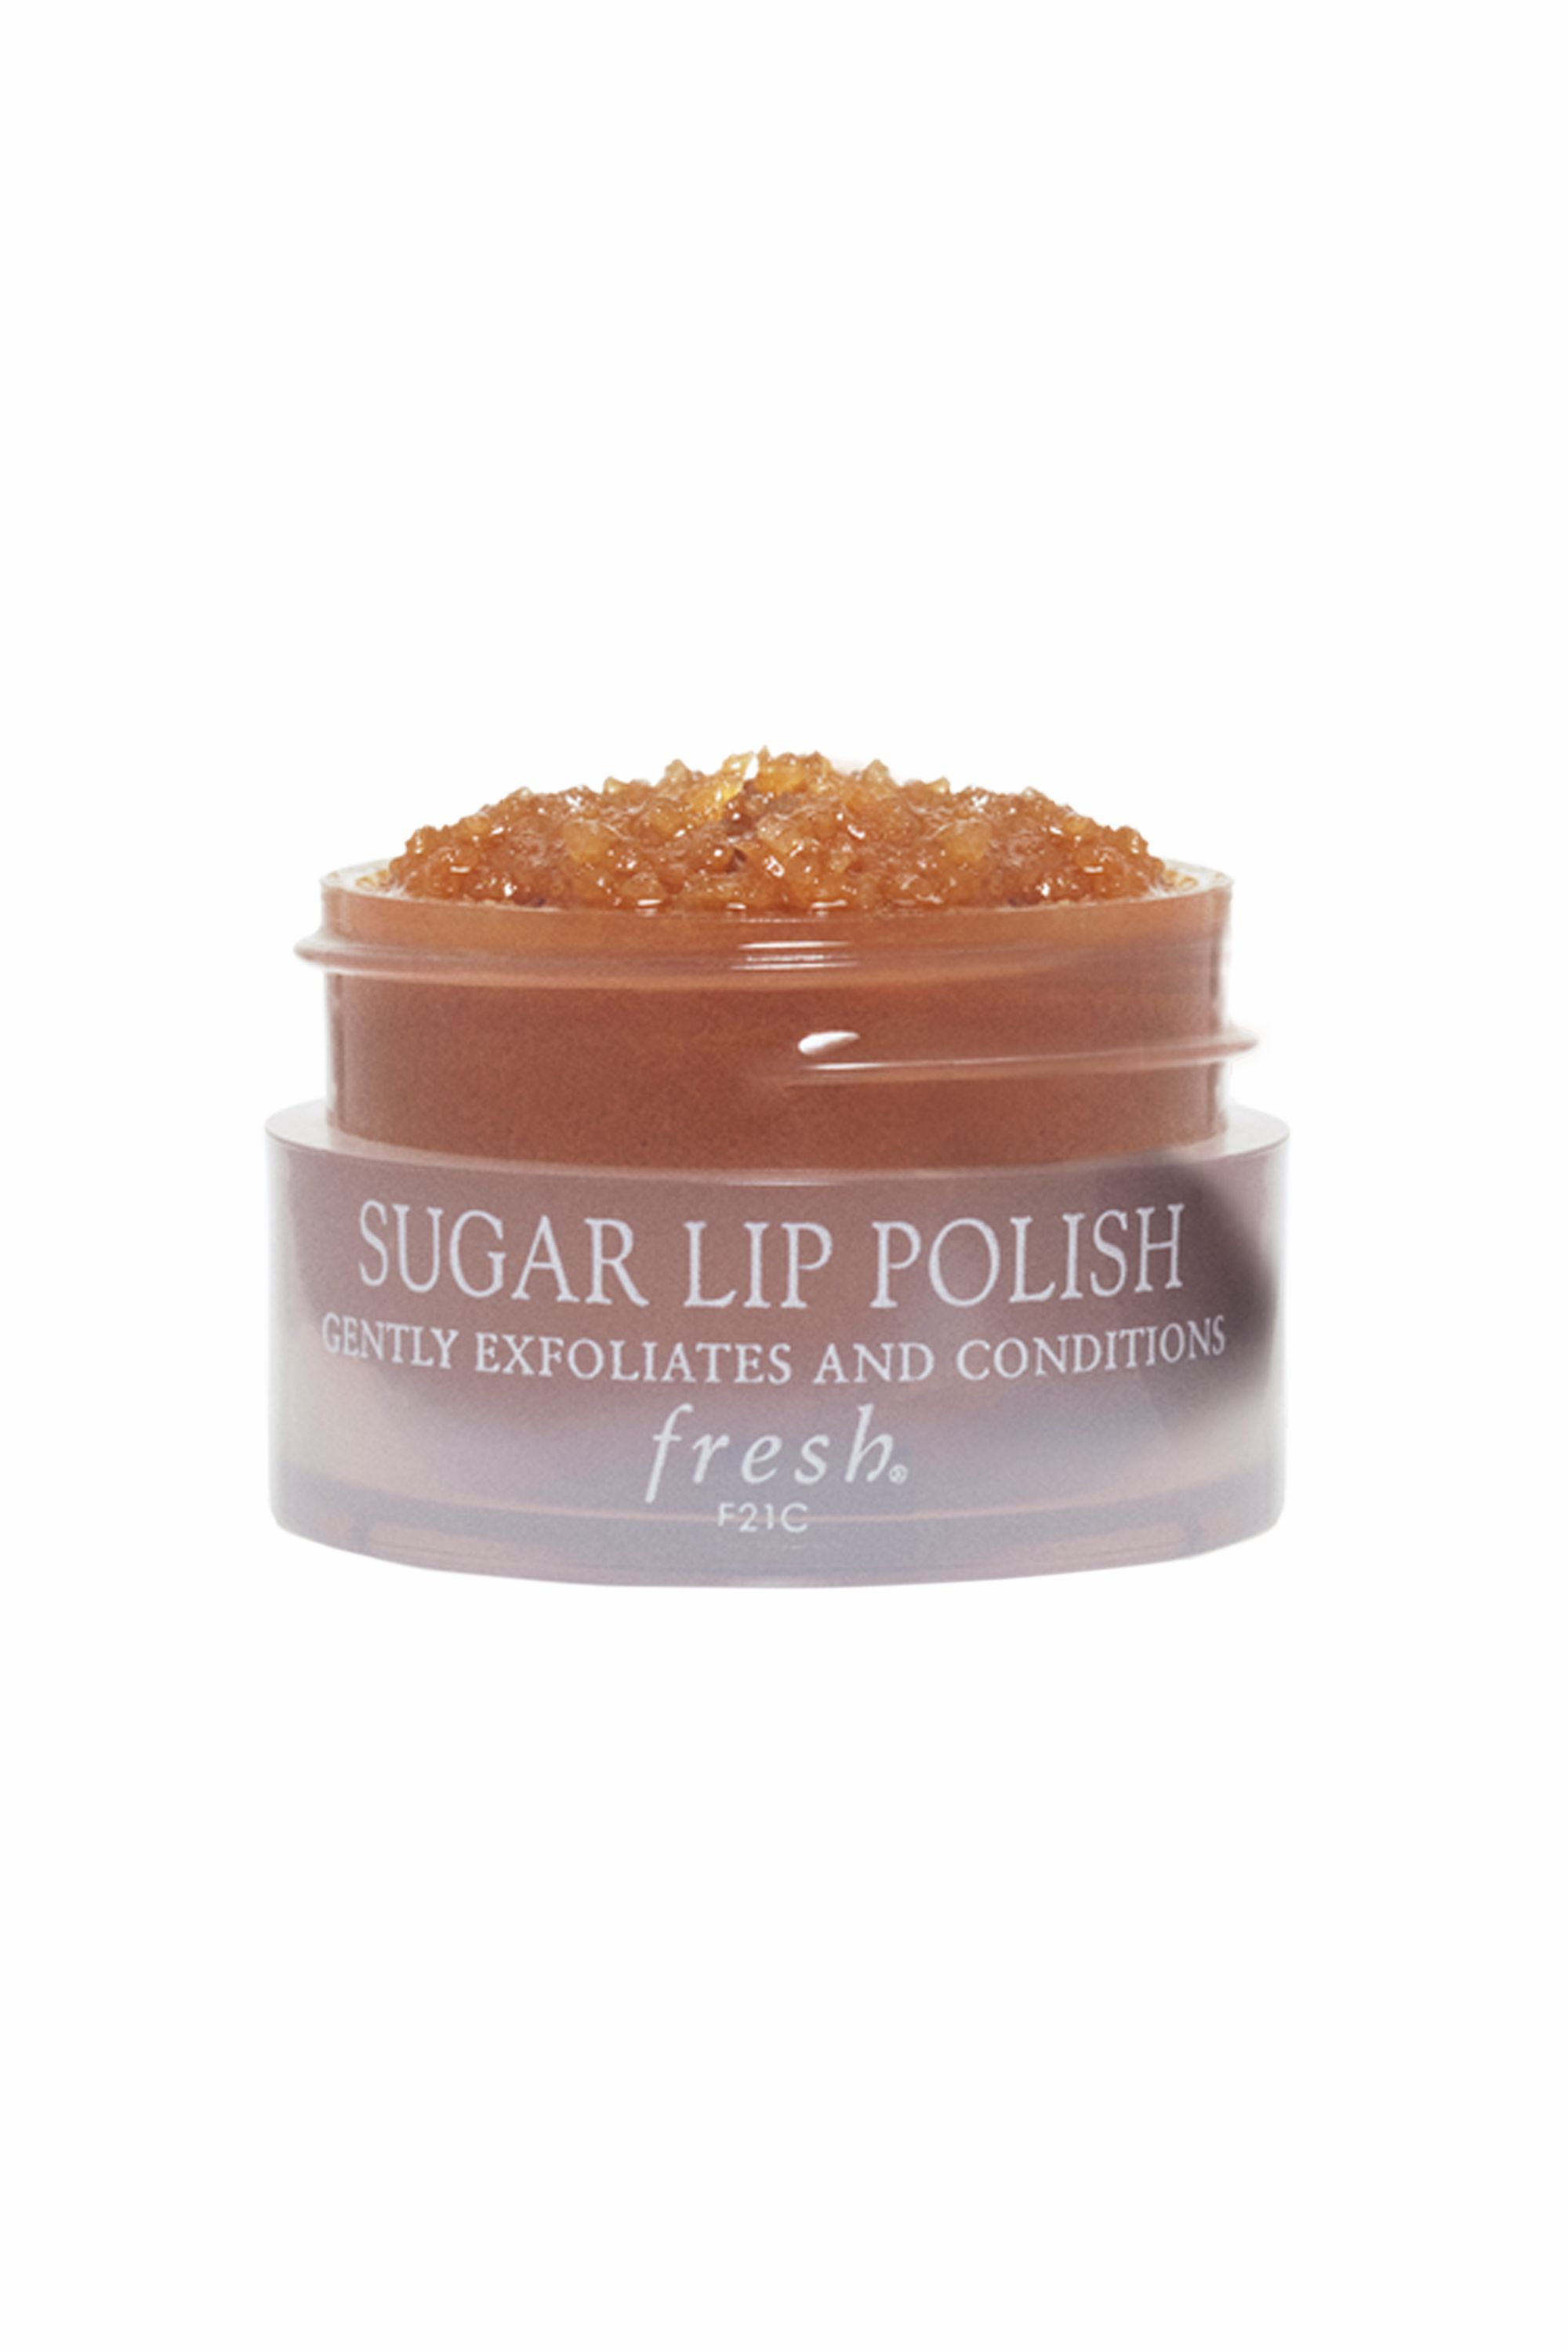 """<p>To get a polished finish and longer wear from your lipstick, make sure lips are perfectly smooth. Start by massaging a gentle lip scrub (try <a href=""""http://www.fresh.com/US/lipcare/sugar-lip-polish/H00001924.html"""" target=""""_blank"""">Fresh Brown Sugar Lip Polish</a>, $24), in small circular motions to buff away any flakiness or dry patches and create a clean canvas for the color. In a pinch, you can use a toothbrush to get the same effect.</p>"""